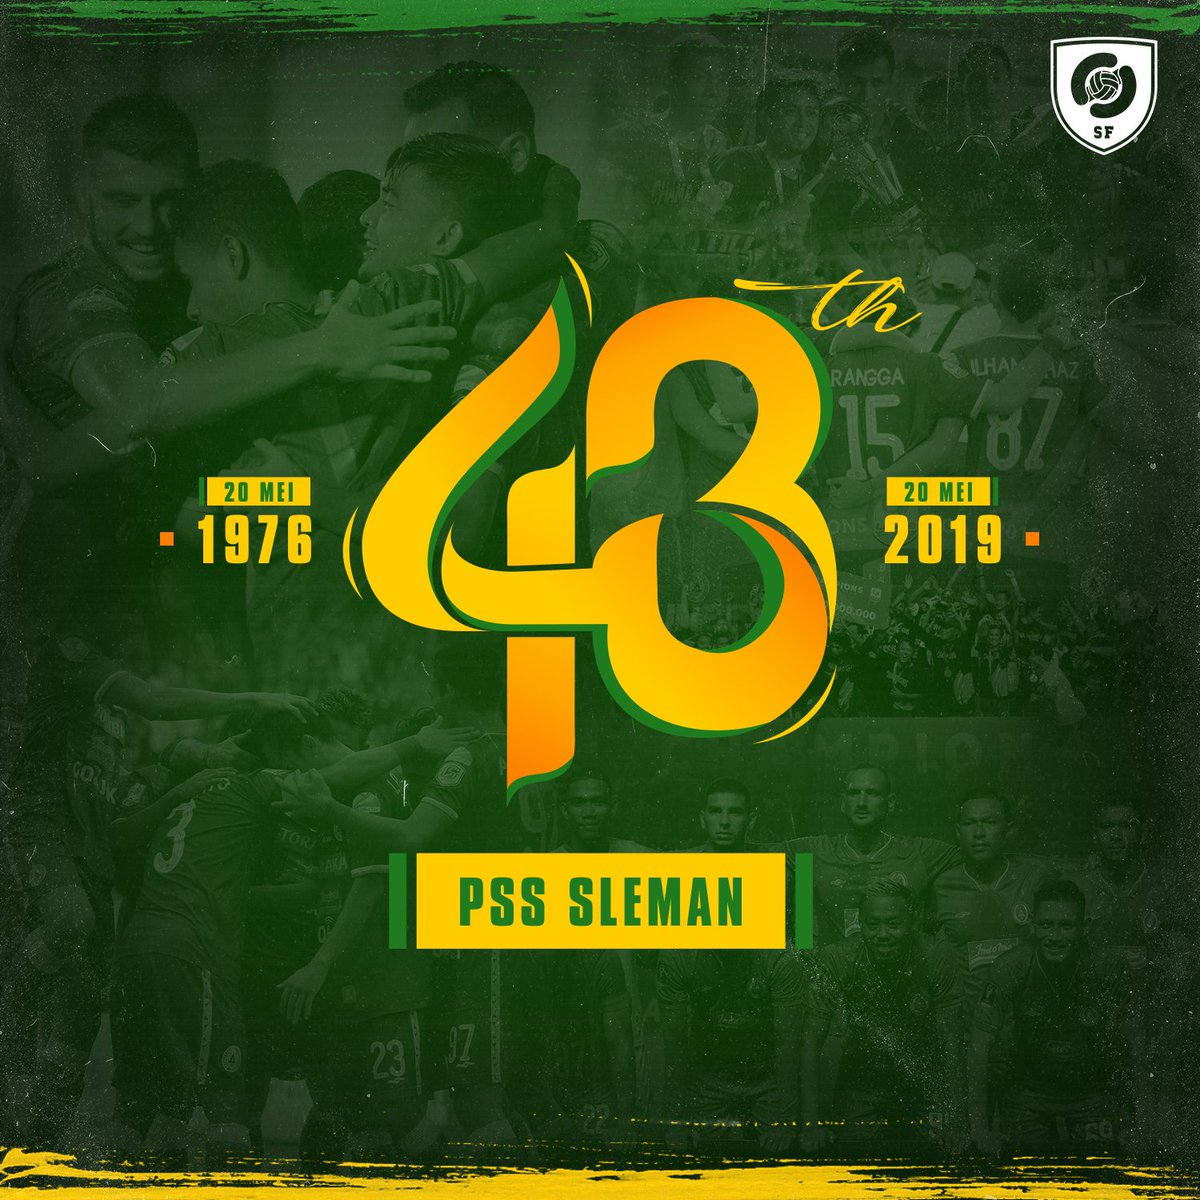 RT @SepakbolaSleman: LIVE MORE, BE MORE @PSSleman 🔥  #PSSforlife #PSS43TH https://t.co/HB8fExPz5J